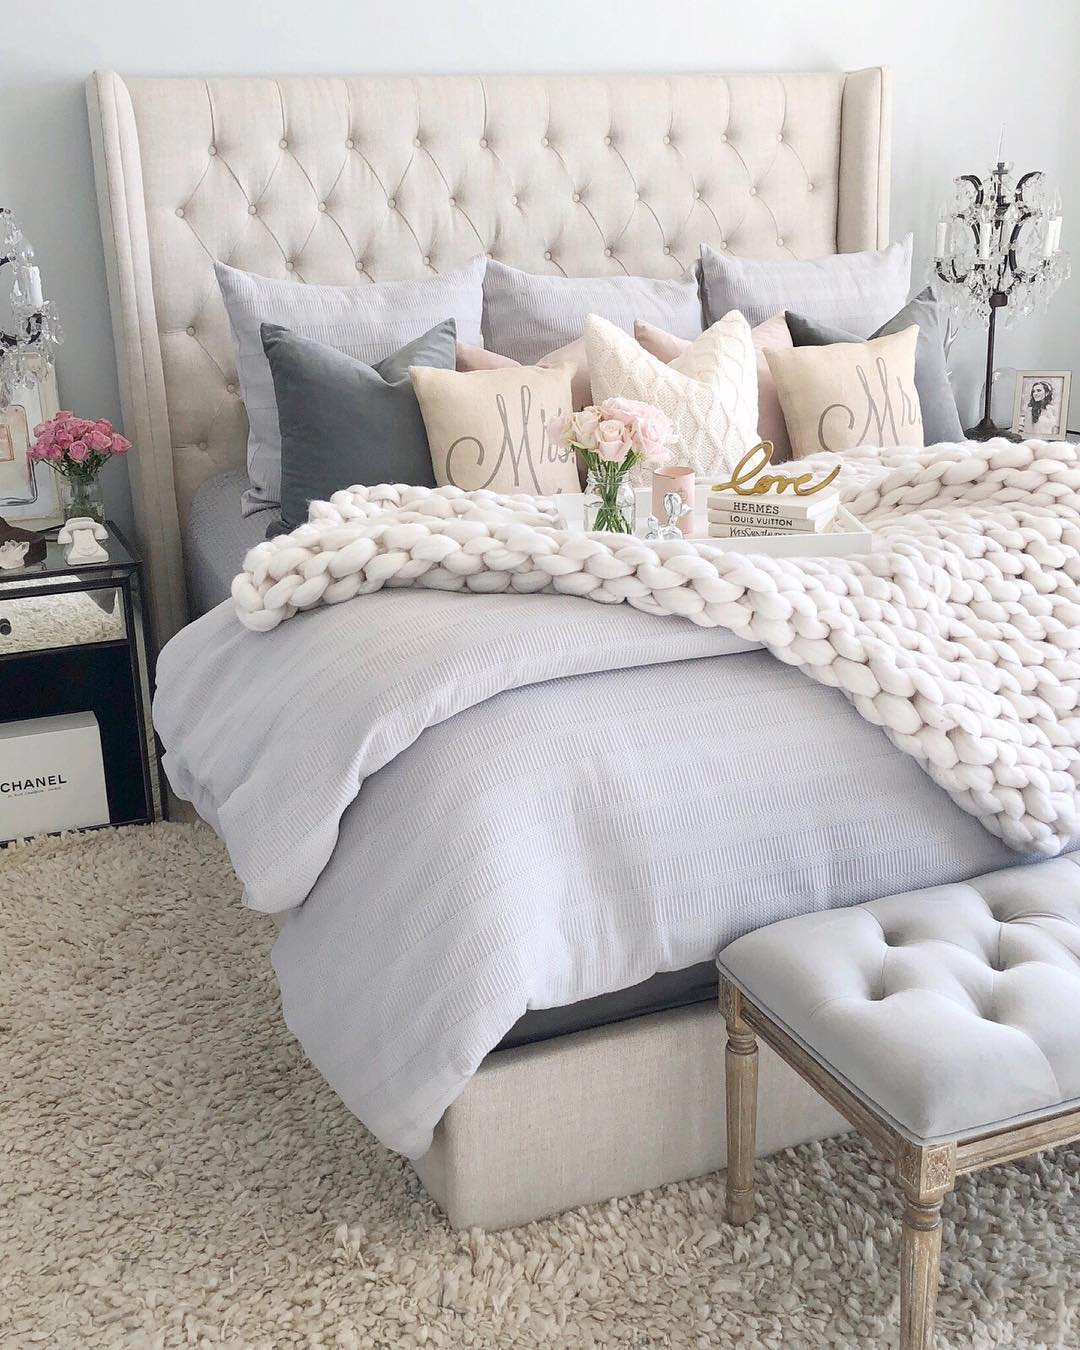 Neutral tufted headboard with lots of pillows via @sbkliving